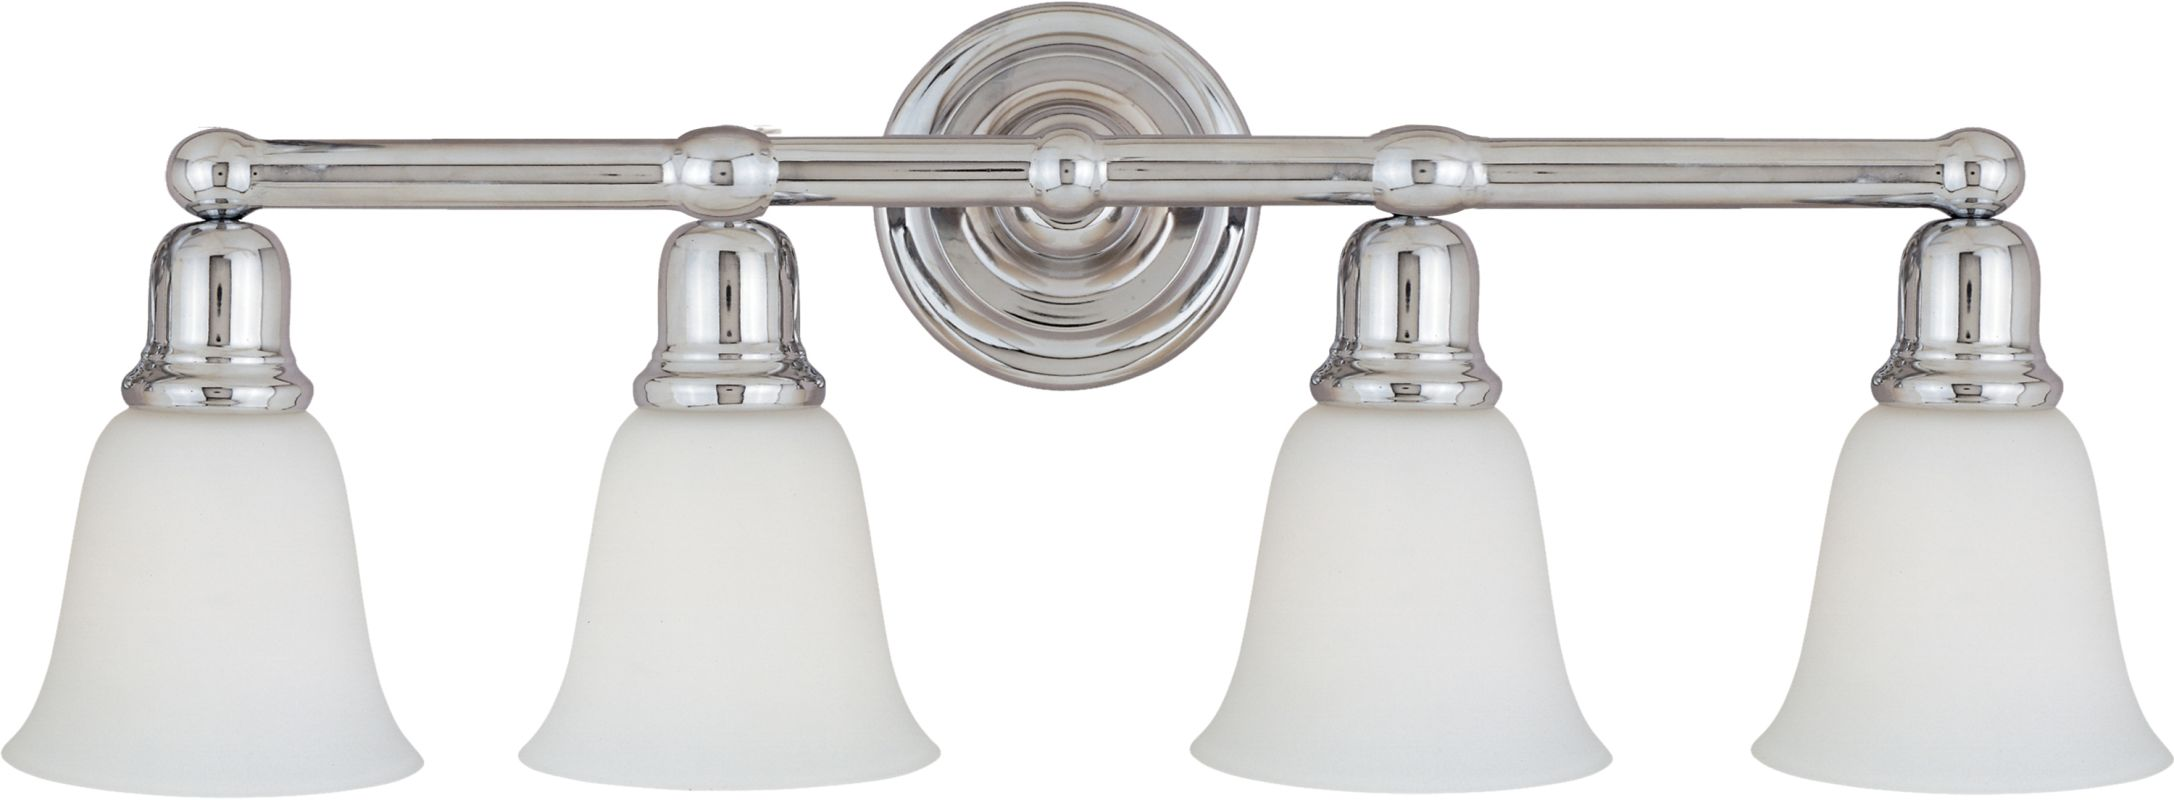 "Maxim 11089 4 Light 30.5"" Wide Bathroom Fixture from the Bel Air"